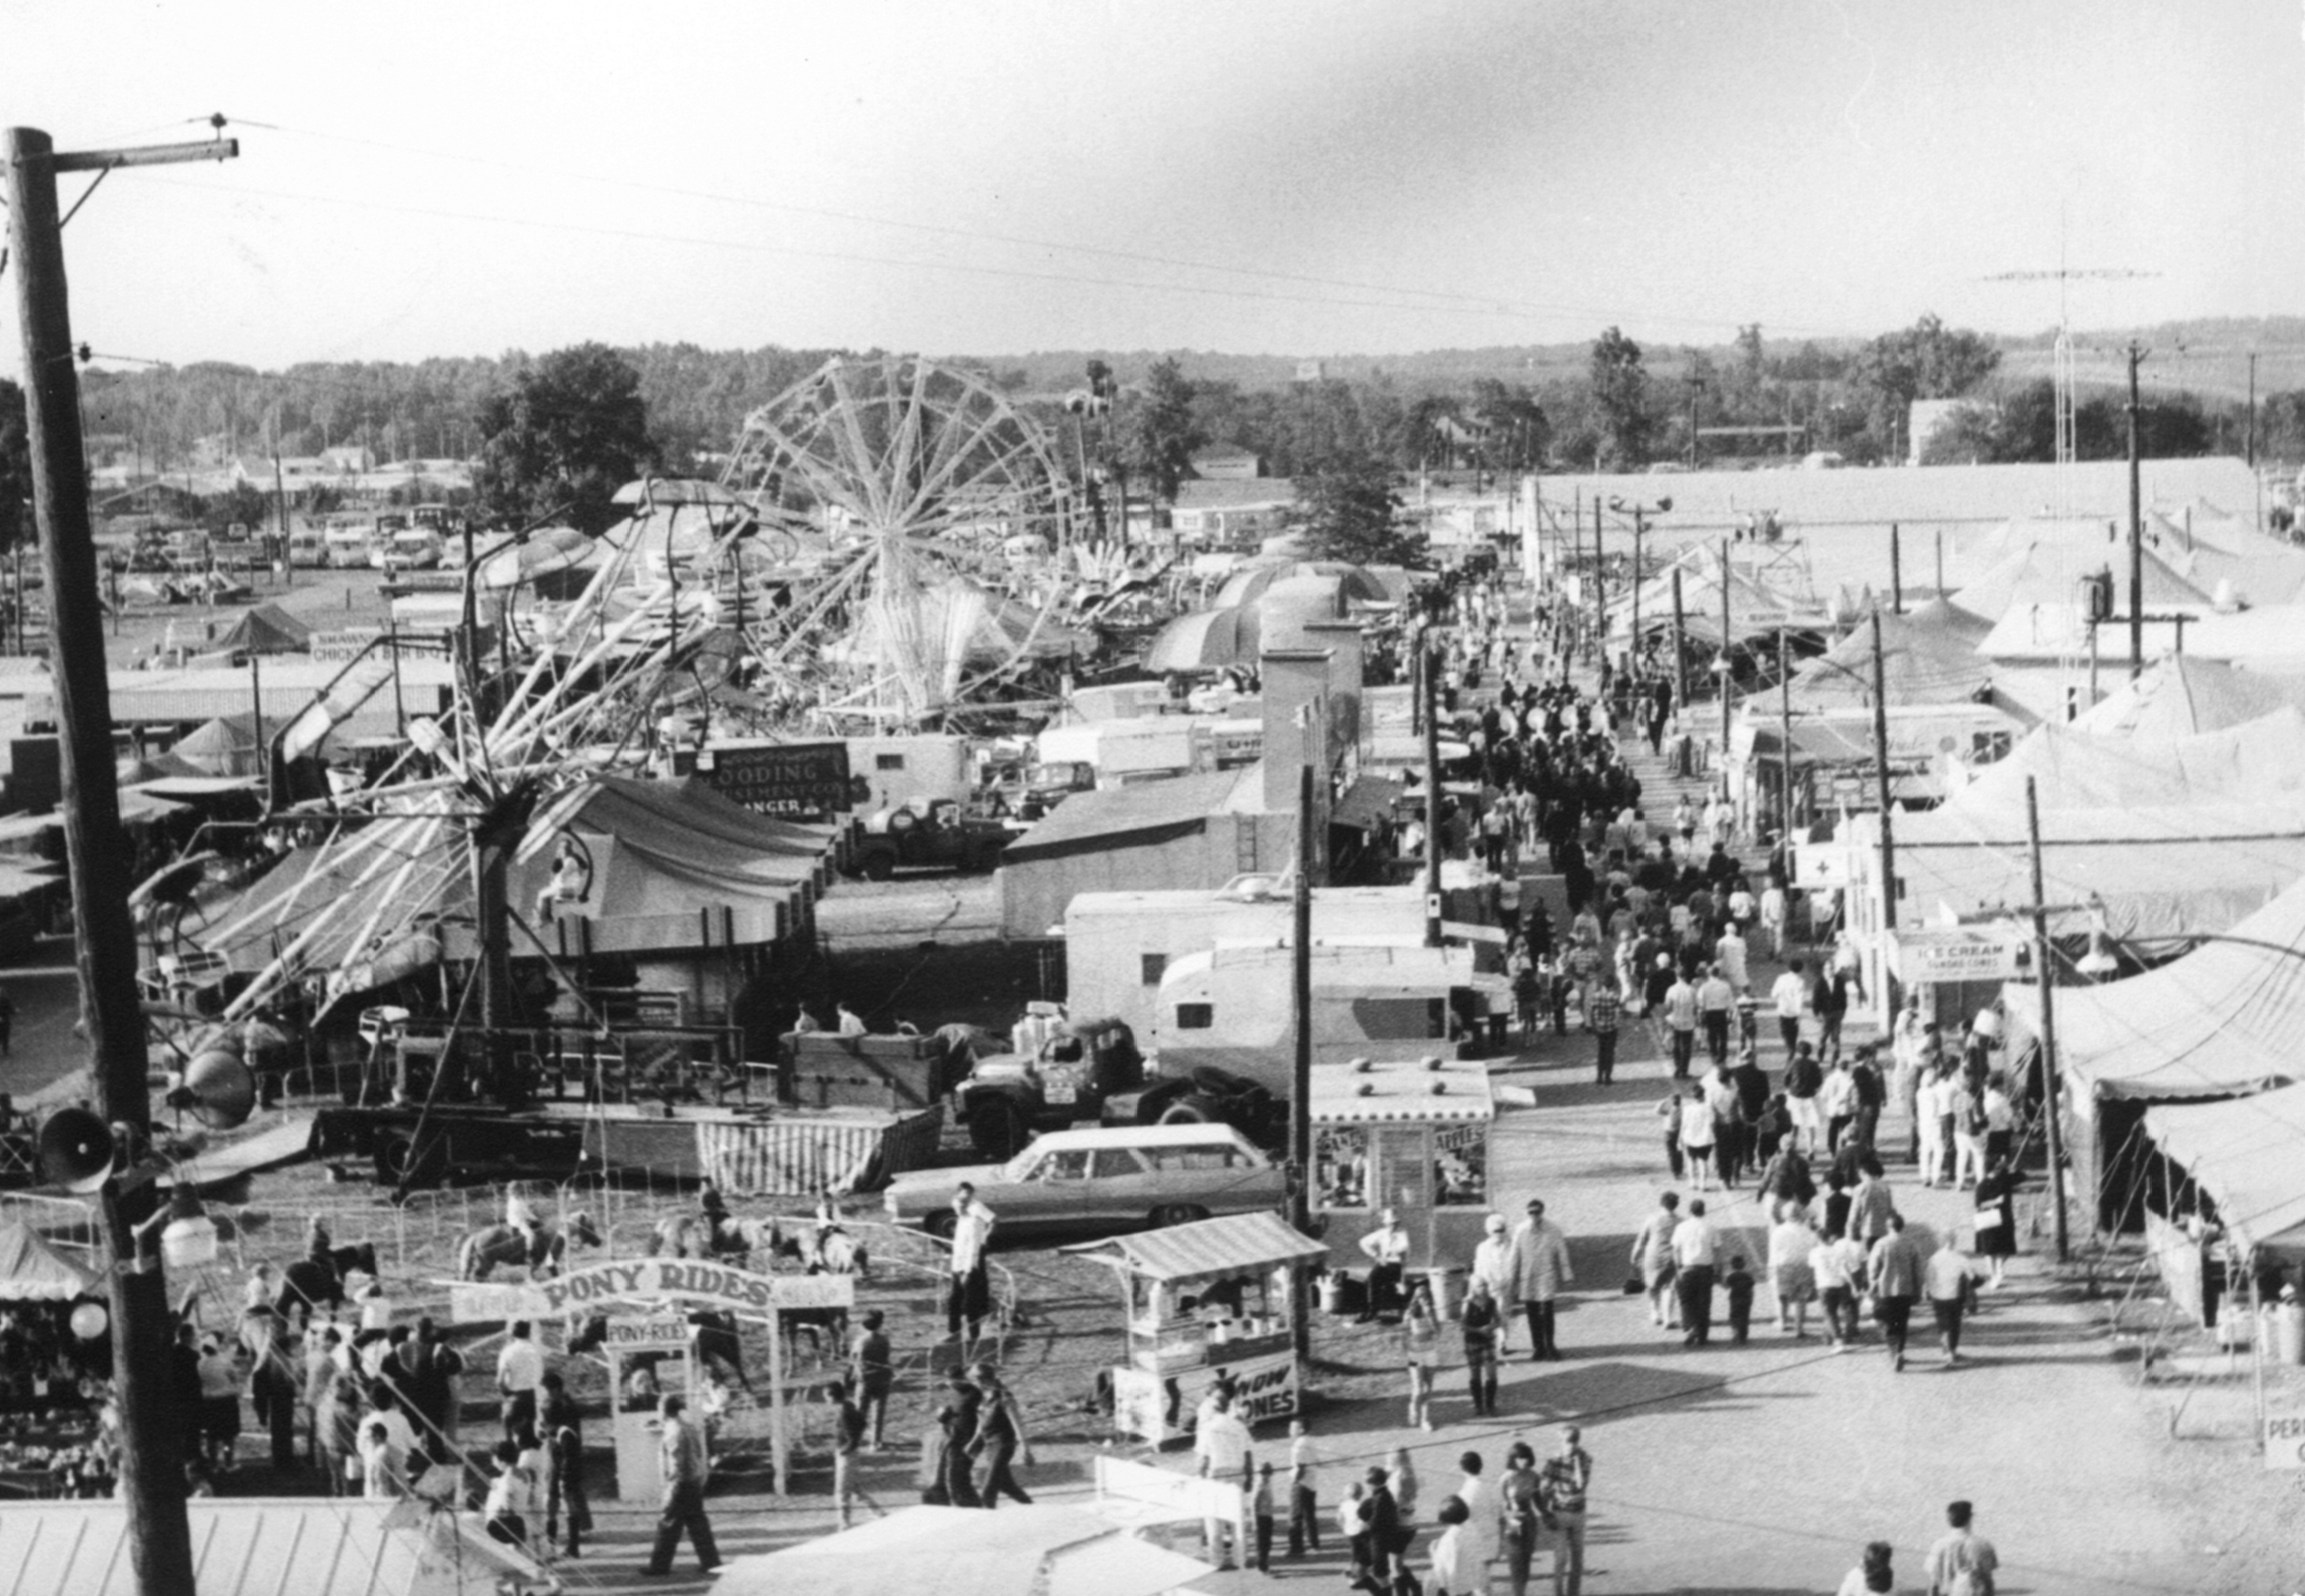 Today the Allen County Fair is one of the top fairs in the state, with attendance figures of well over 200,000 visitors annually.